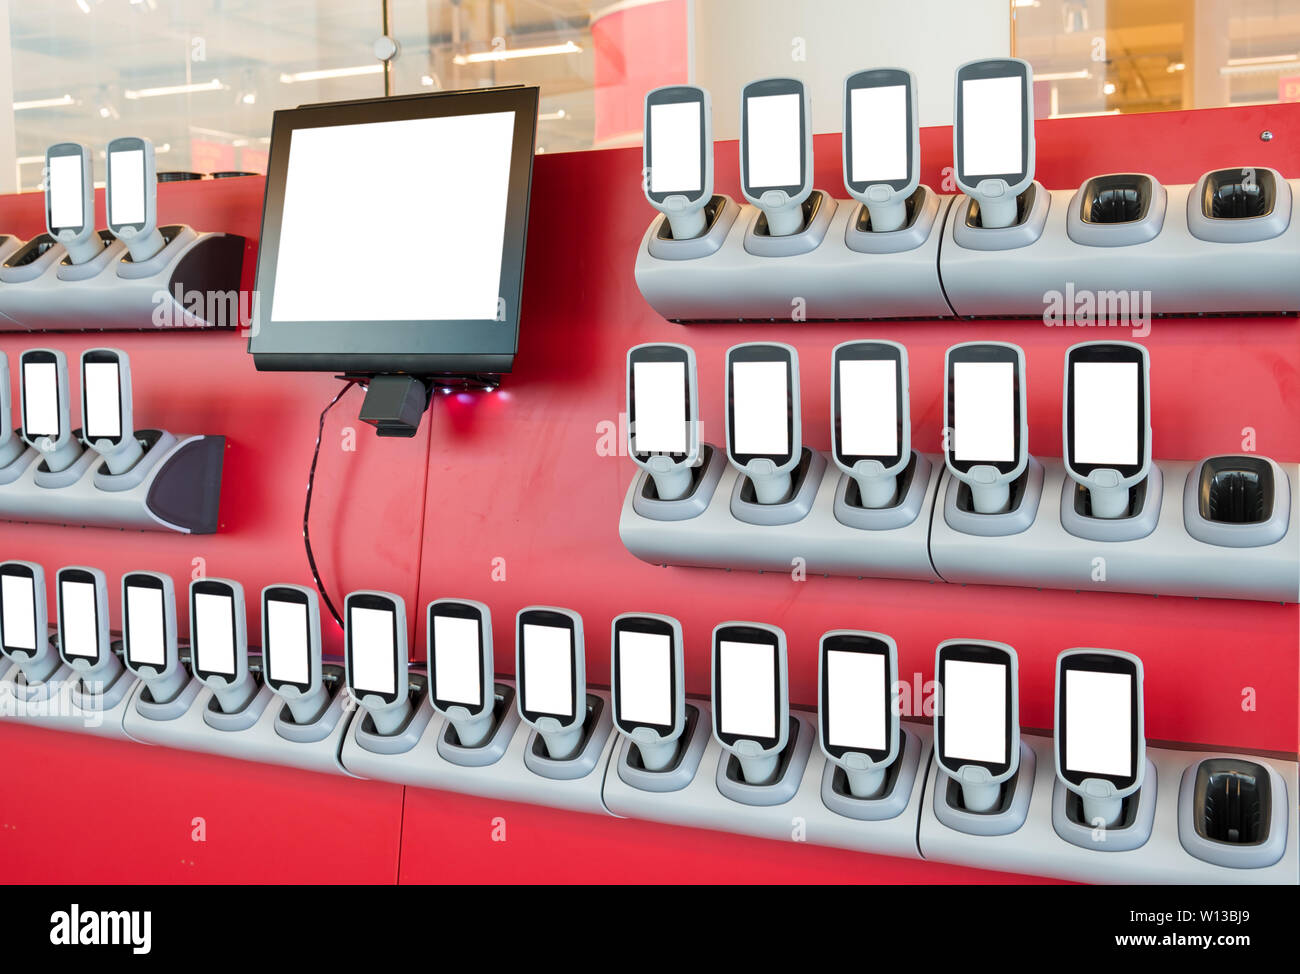 Device convenience of shopping with blank display in supermarket - Stock Image